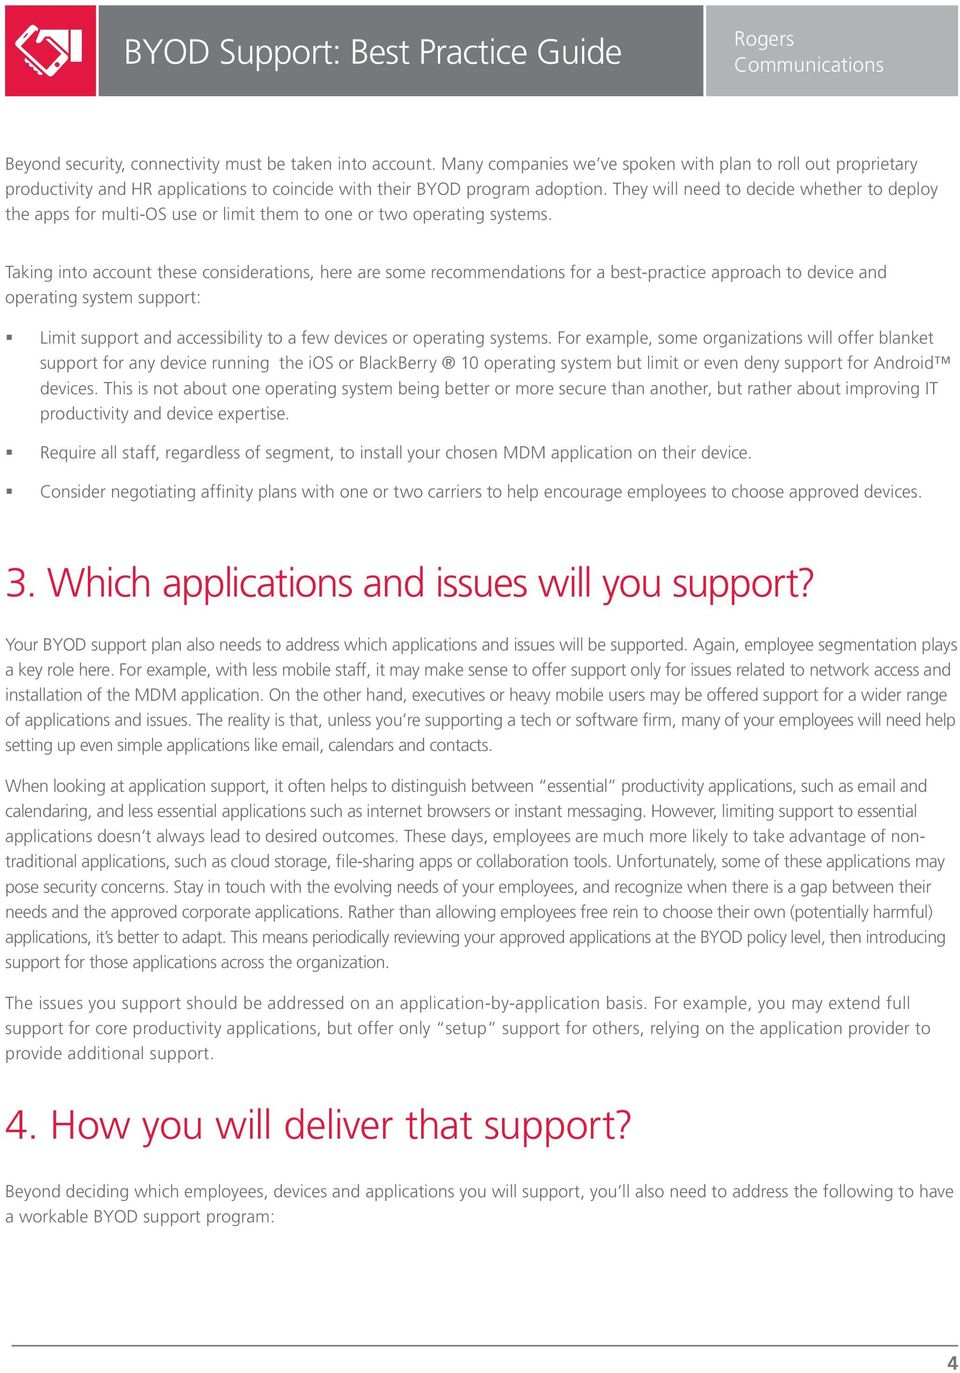 Taking into account these considerations, here are some recommendations for a best-practice approach to device and operating system support: Limit support and accessibility to a few devices or